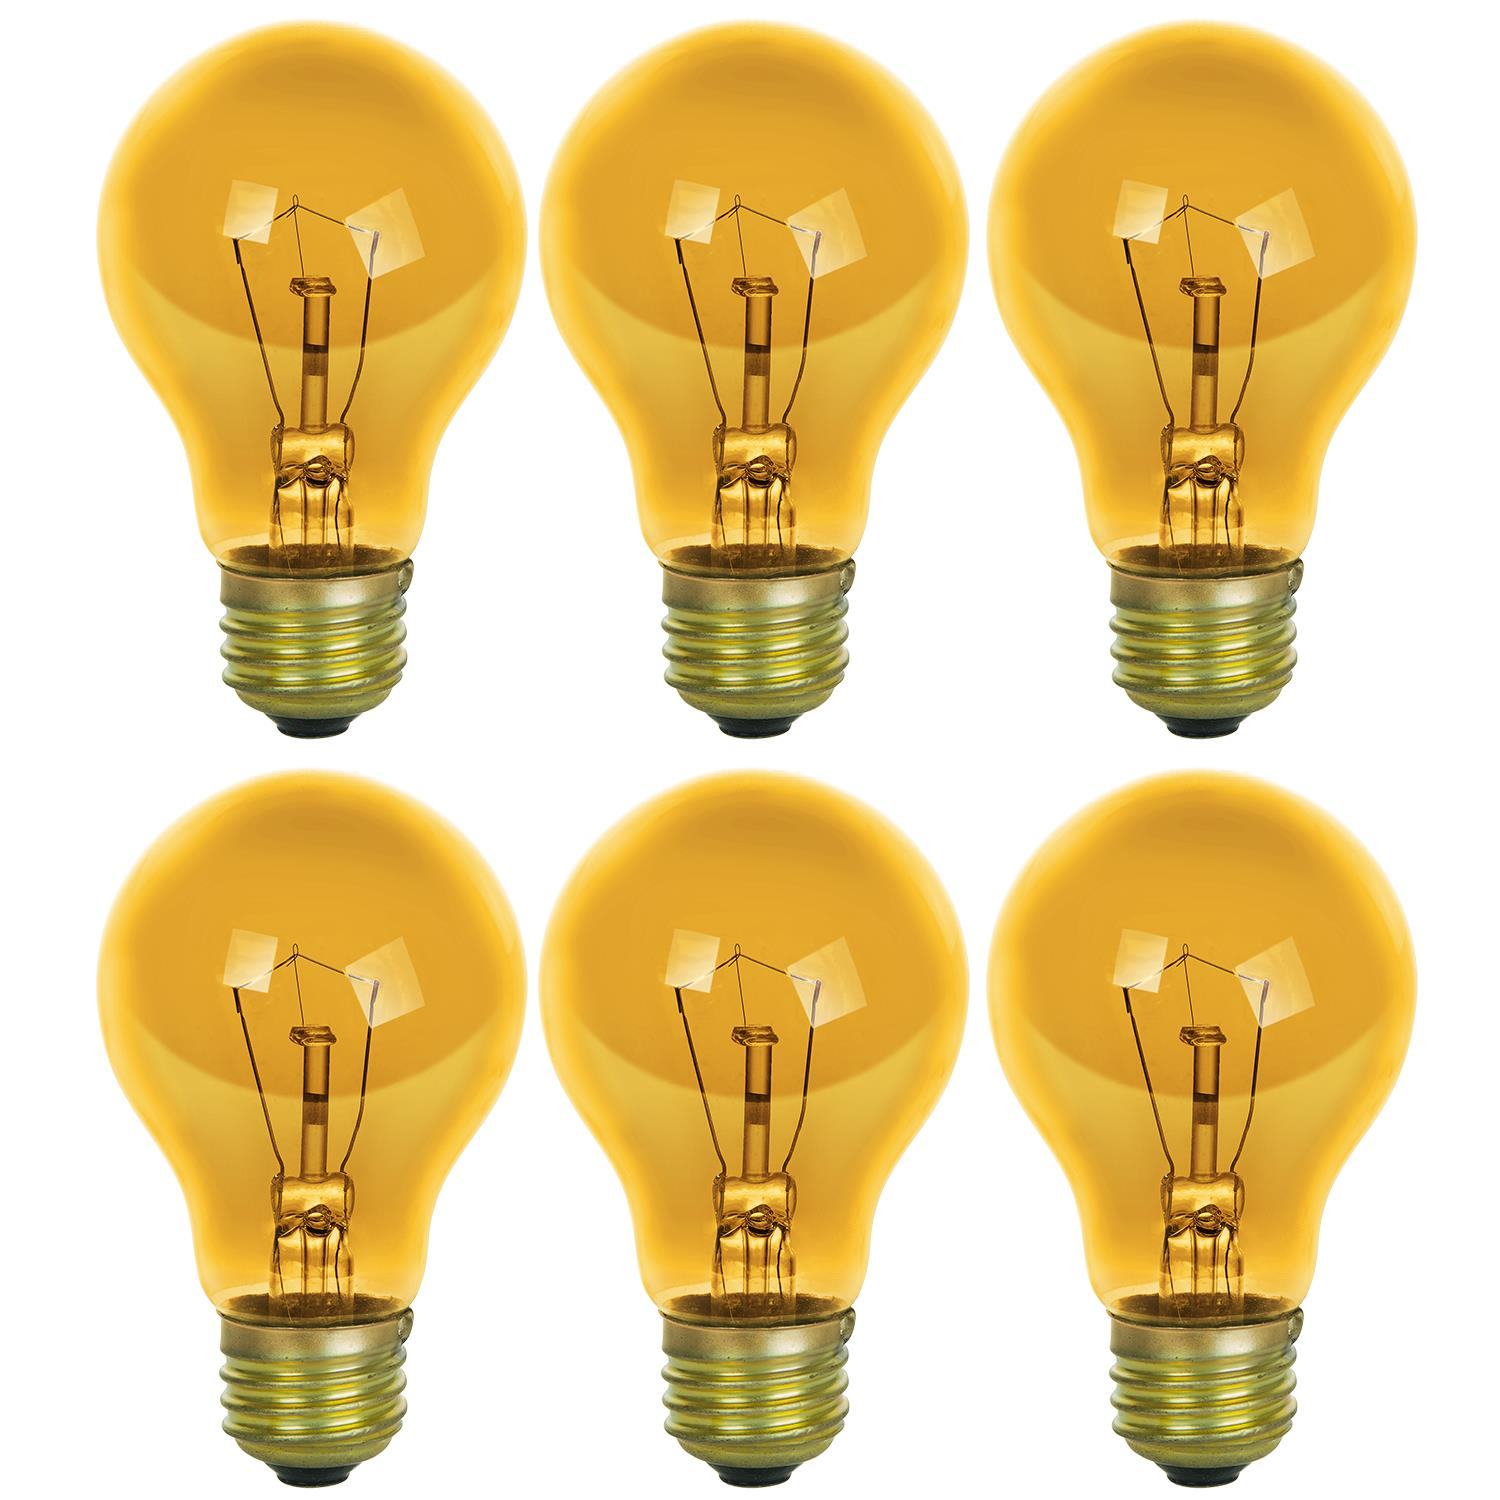 Pack of 6 2 Pack Sunlite Incandescent 25 W A19 Yellow Transparent  Light Bulb